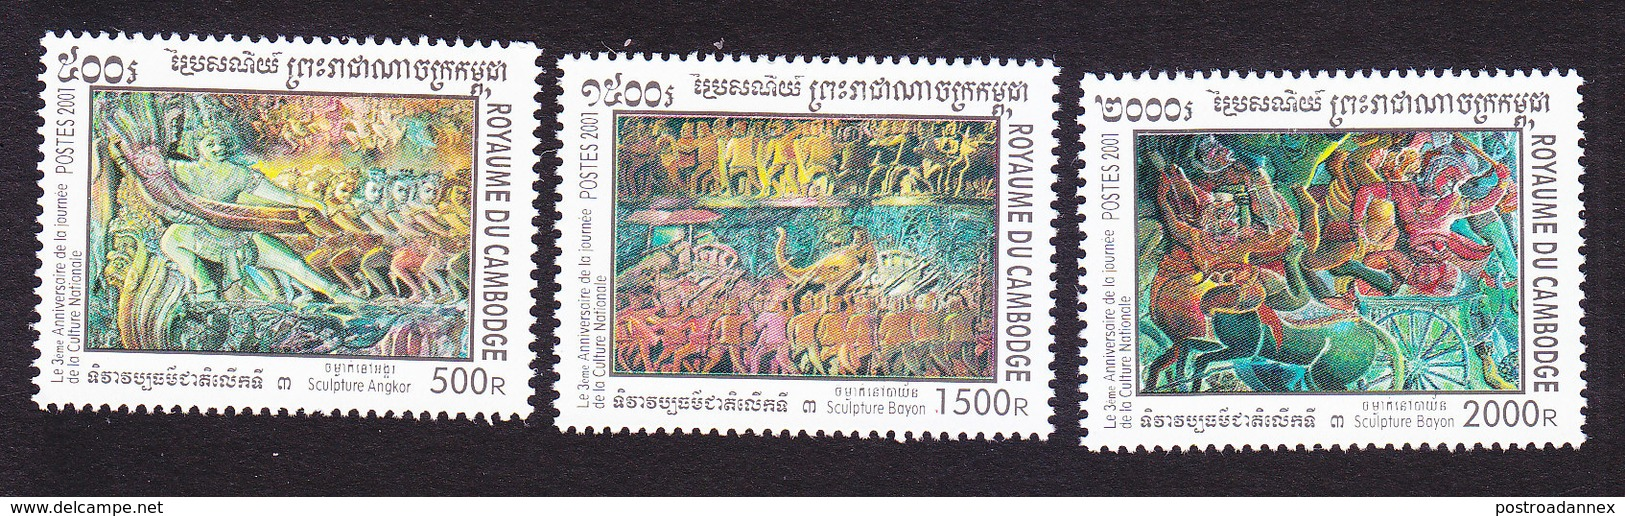 Cambodia, Scott #2087-2089, Mint Hinged, Nat'l Culture Day, Issued 2001 - Cambodge